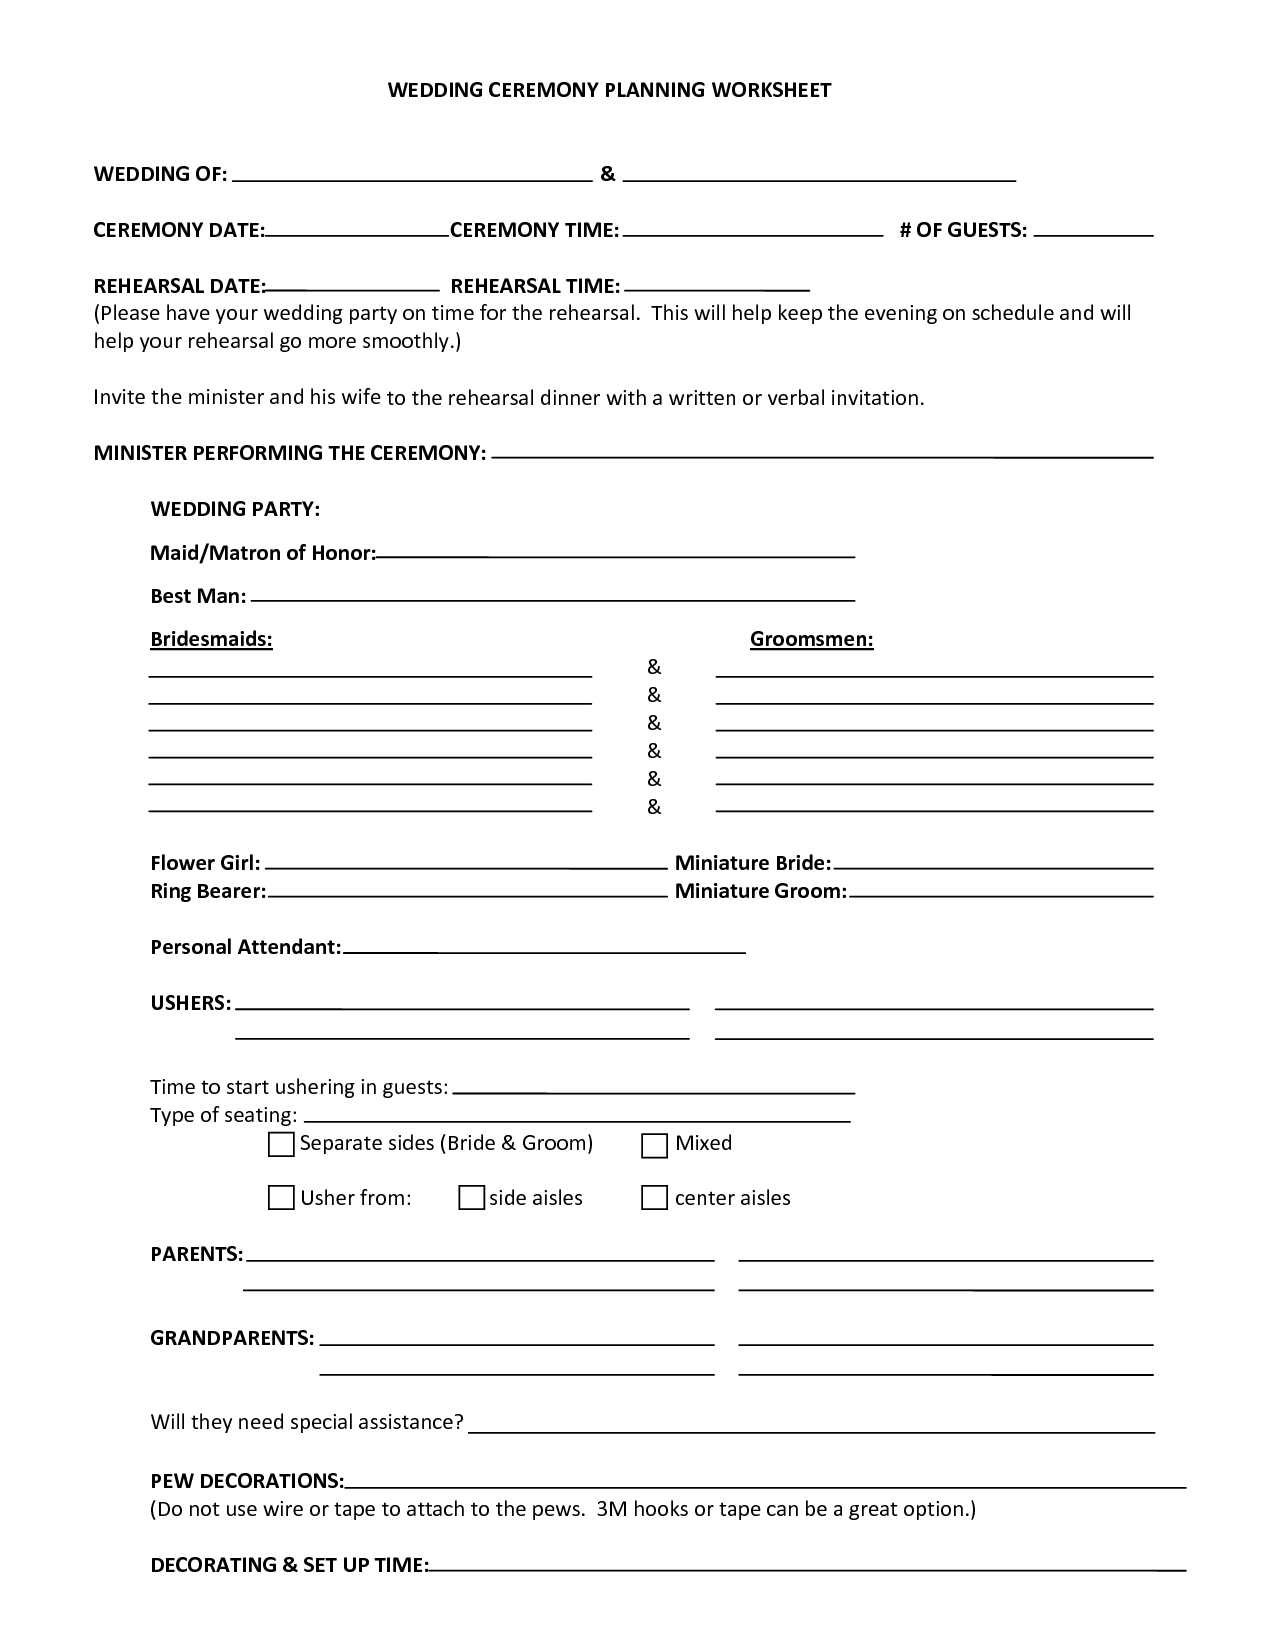 Worksheets Event Planning Worksheets wedding ceremony planning worksheet of ideas of